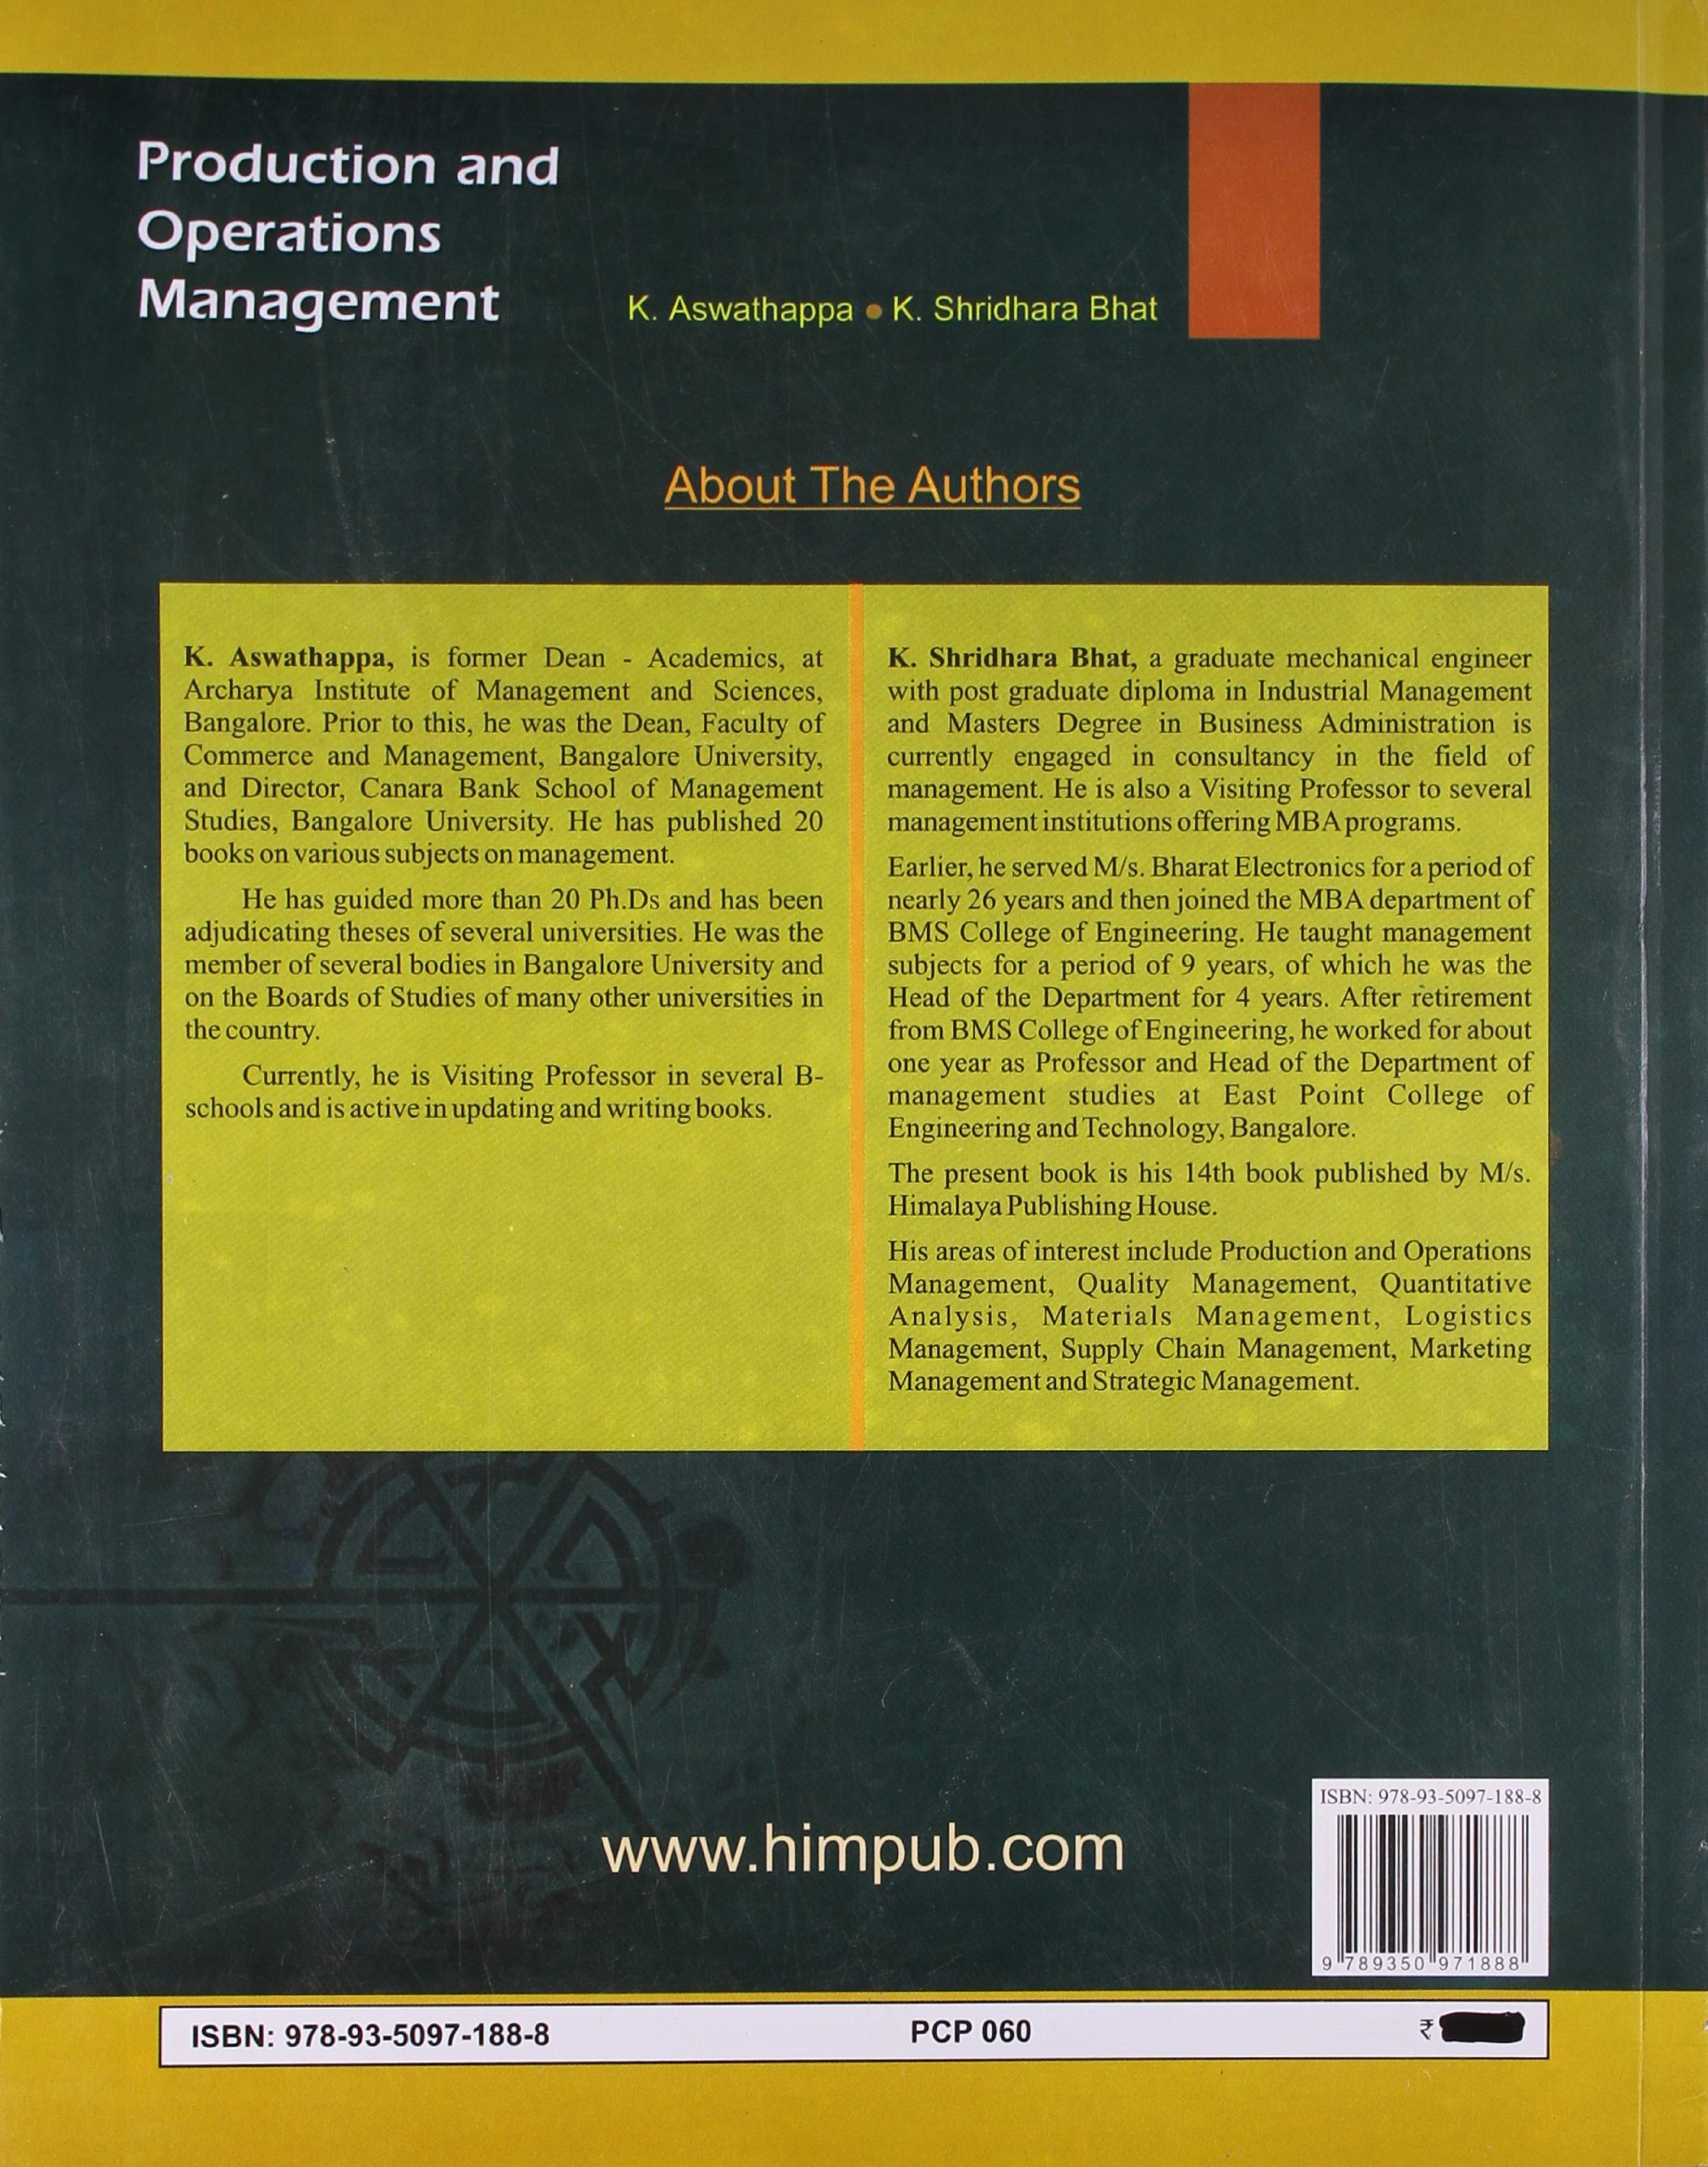 PRODUCTION AND OPERATIONS MANAGEMENT - R. PANNEERSELVAM - Google Books